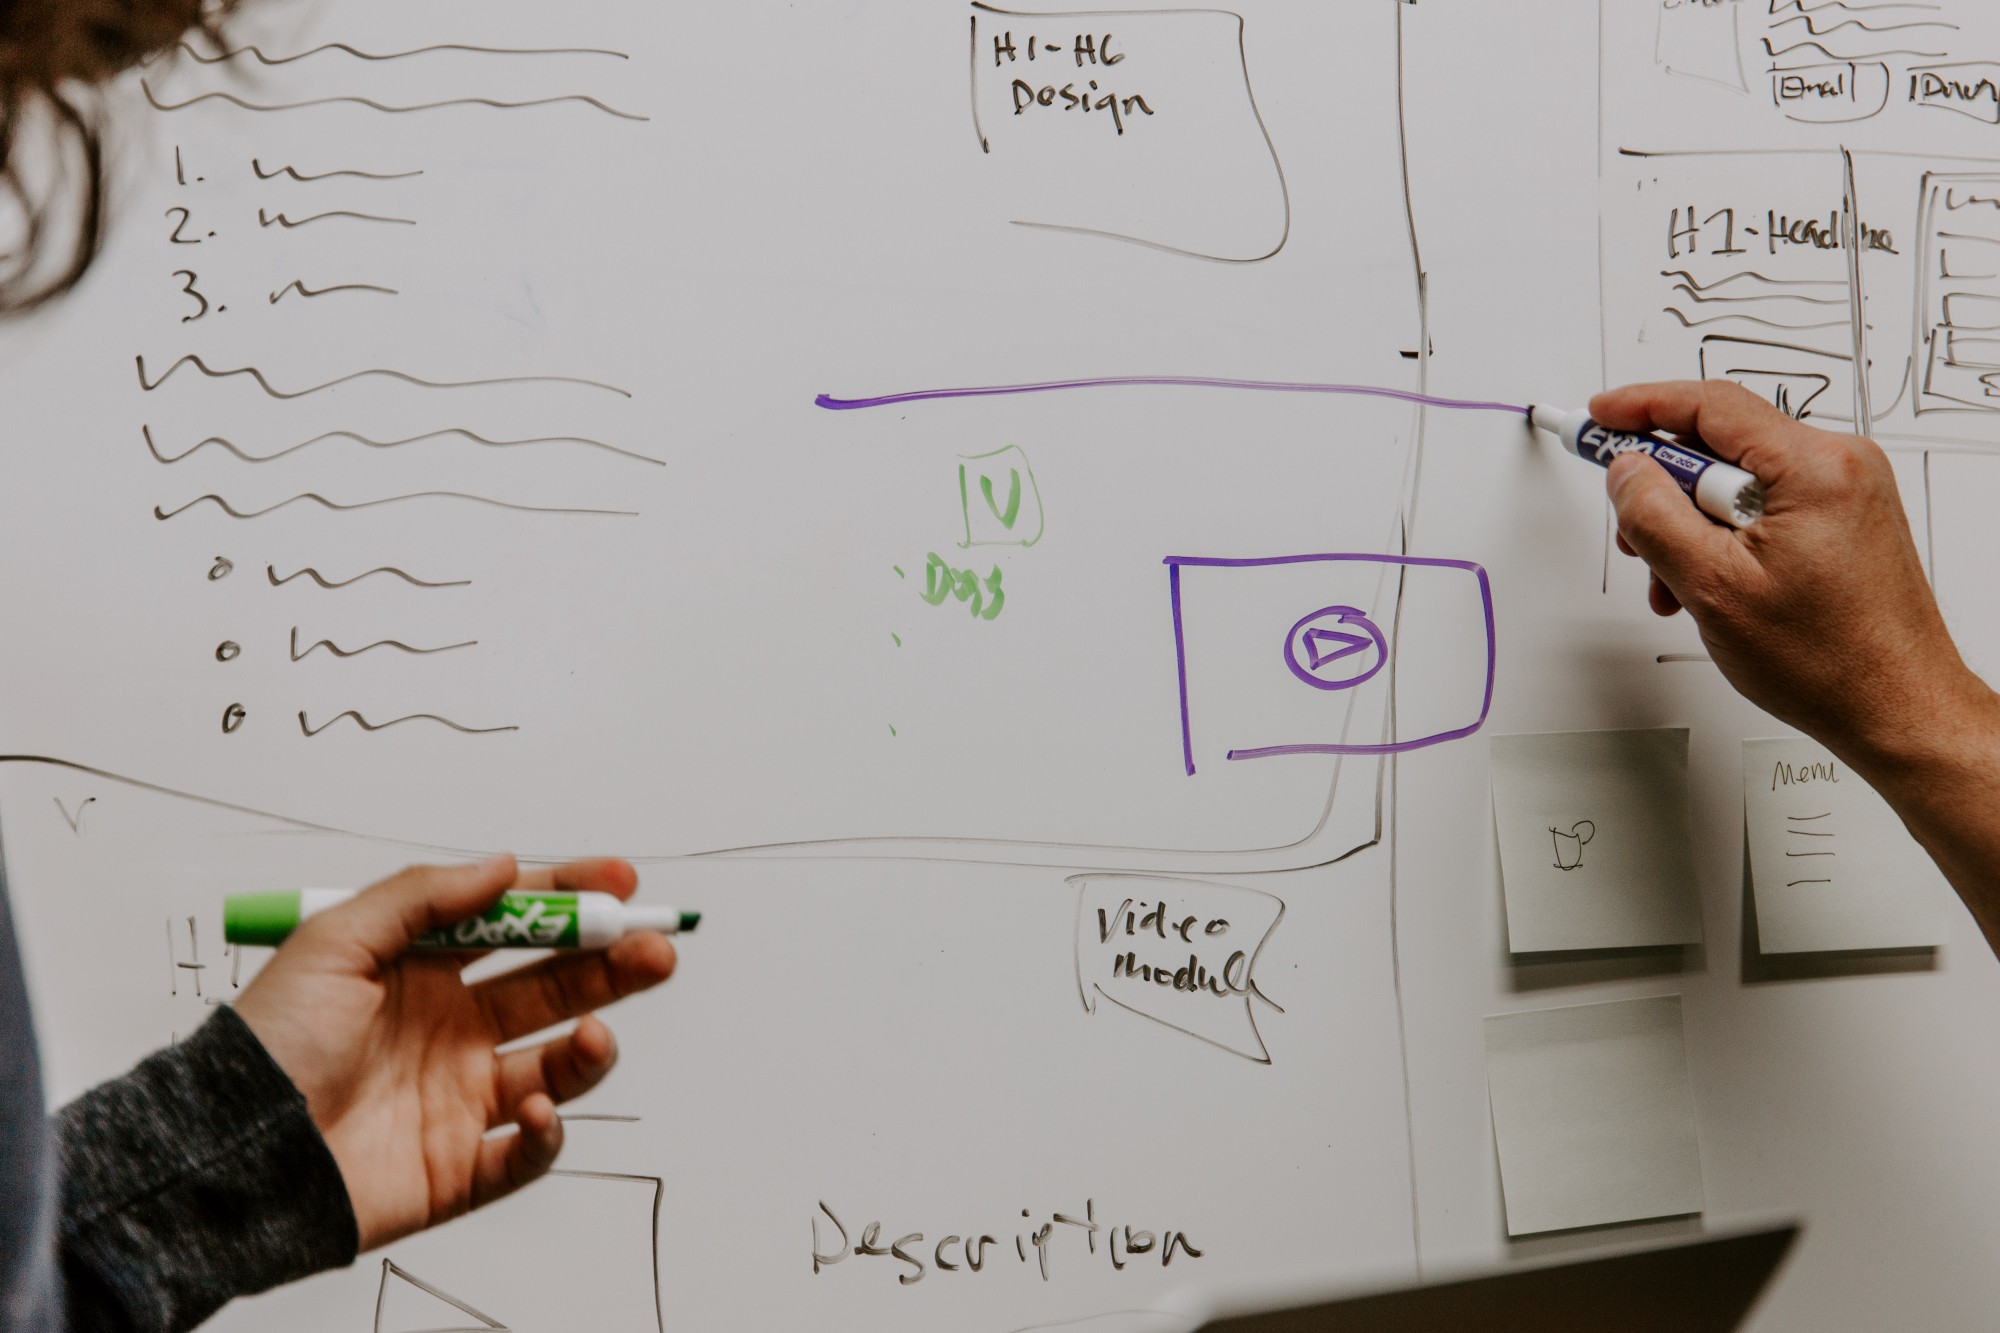 2 people drawing boxes, lines, shapes, etc. to describe ideas on a whiteboard.